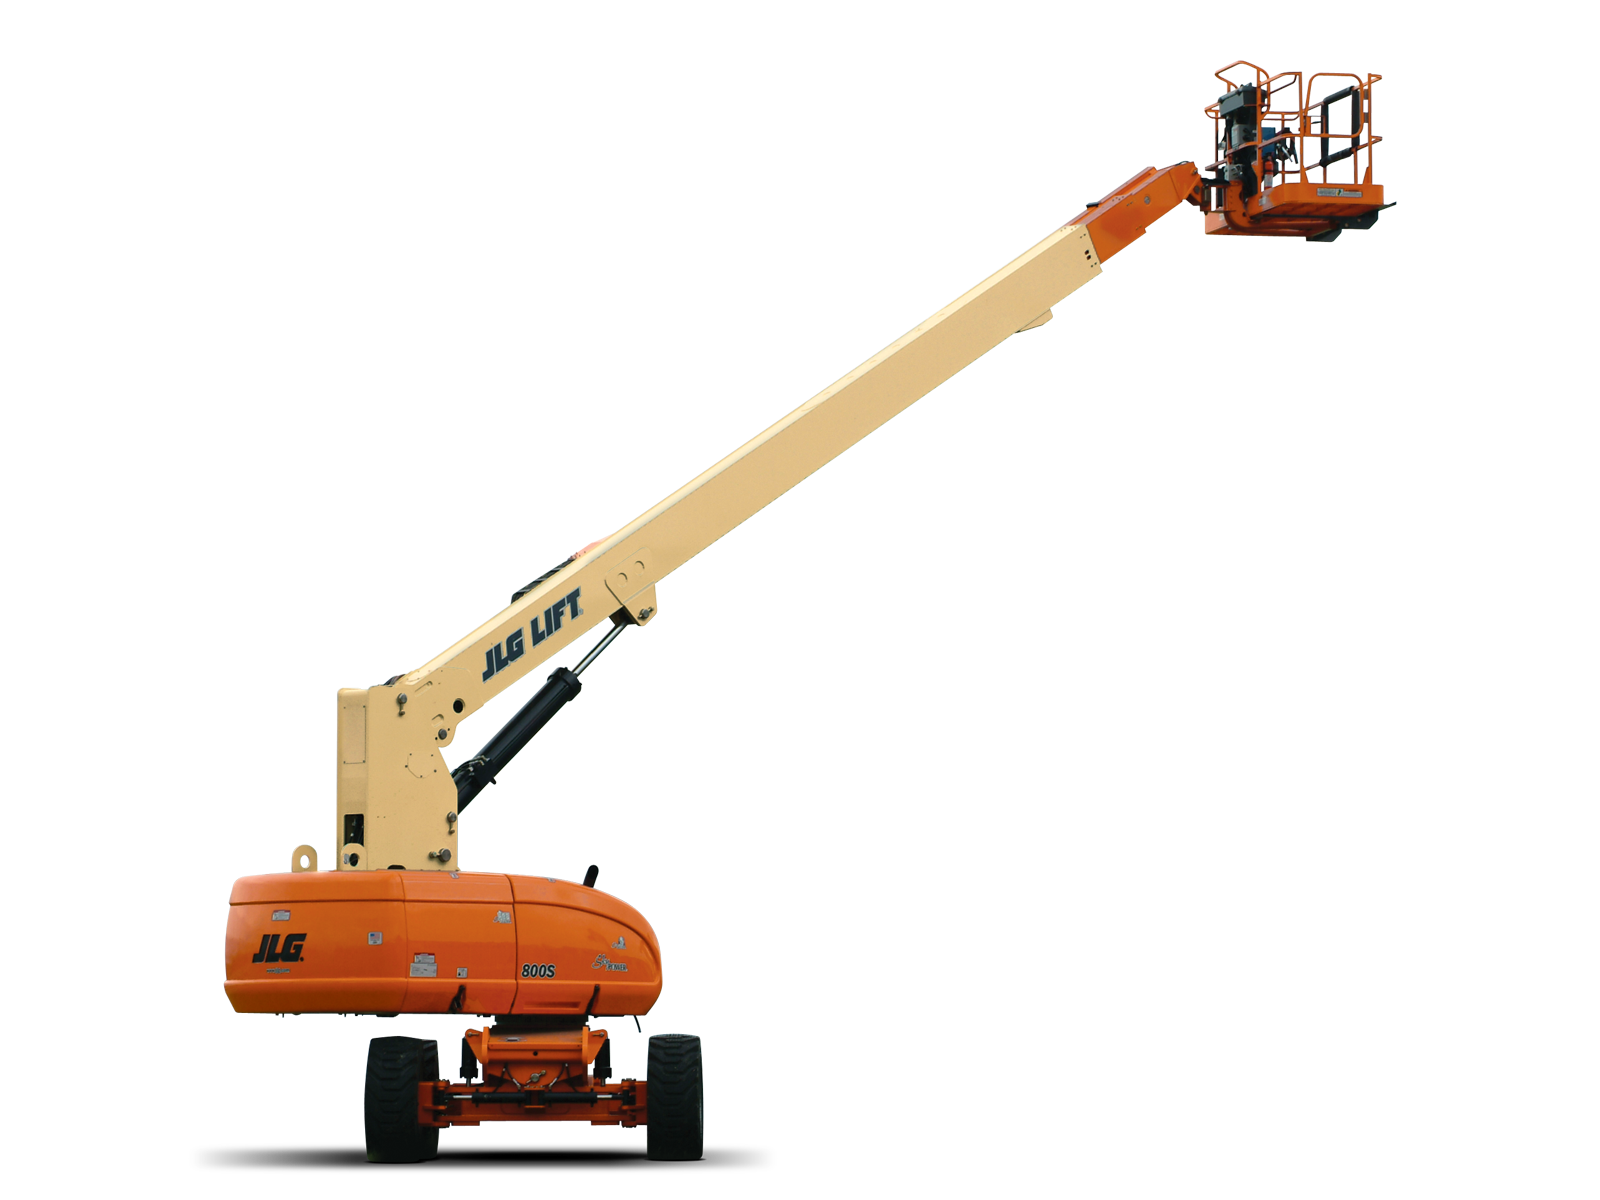 Telescopic Boom Lifts | JLG & Genie | Papé Material Handling on truck wiring diagram, jlg wiring diagram, water tank wiring diagram, lull wiring diagram, generator wiring diagram, dumbwaiter wiring diagram, hoist wiring diagram, hvac wiring diagram, bobcat wiring diagram, pump wiring diagram, loader wiring diagram, hydraulic press wiring diagram, elevator wiring diagram, forklift wiring diagram, ladder wiring diagram, lift wiring diagram, tractor wiring diagram, genie wiring diagram, hyster wiring diagram, skytrak wiring diagram,